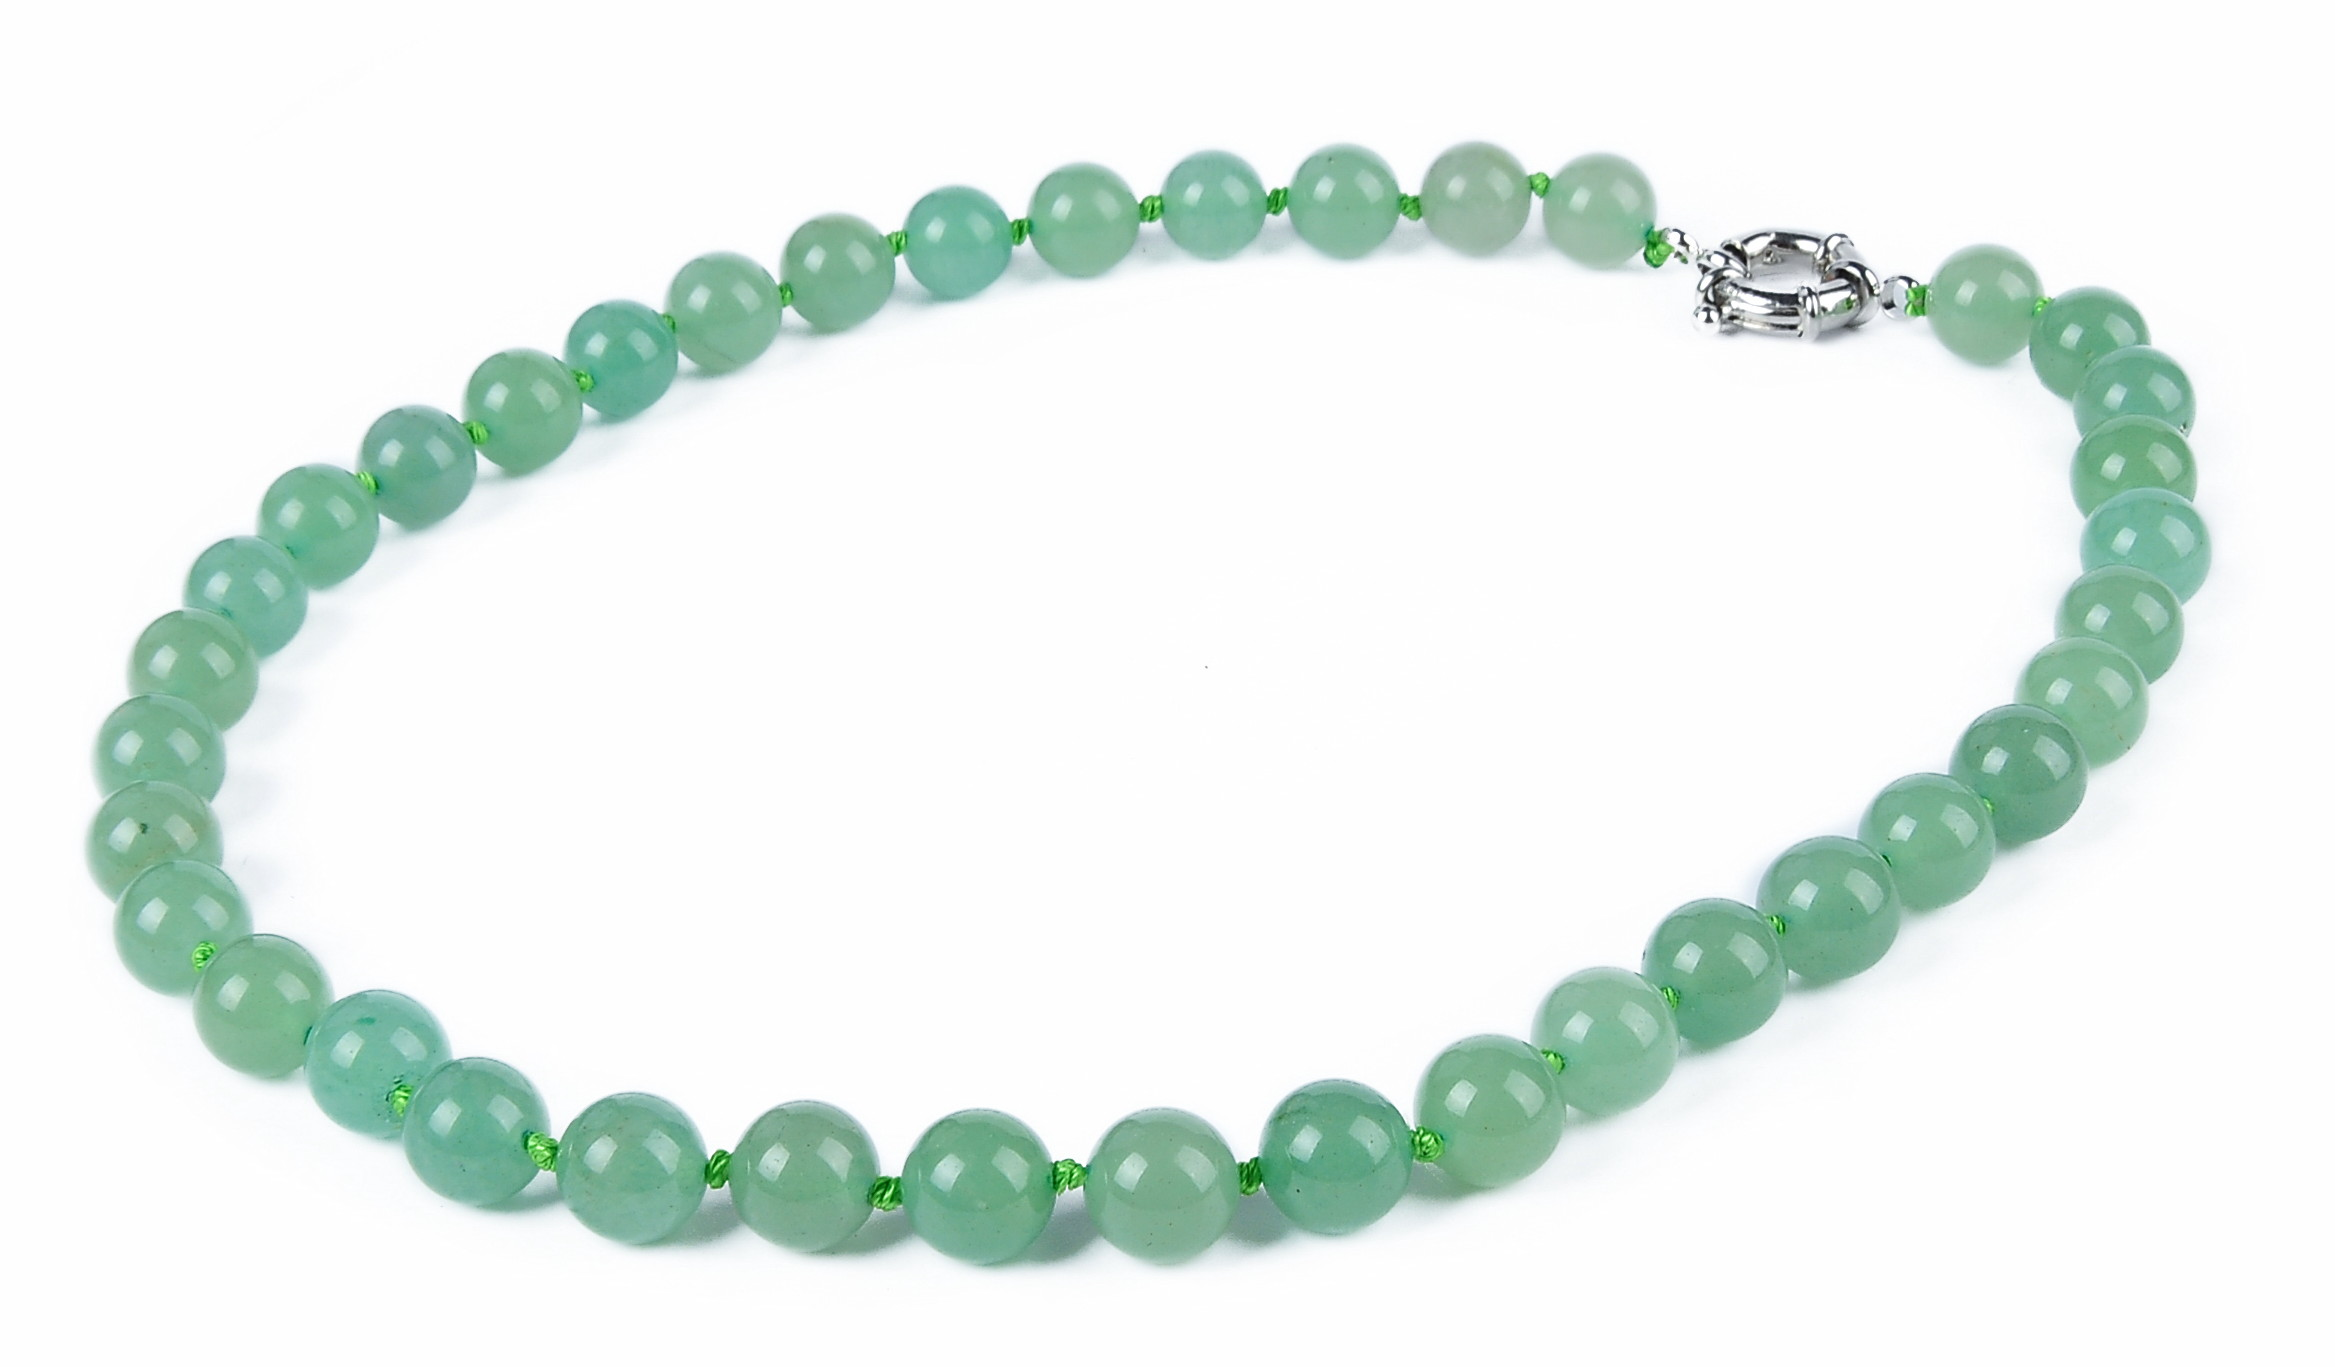 Natural 10mm Green Chinese Aventurine Jade Necklace -nk-jd2